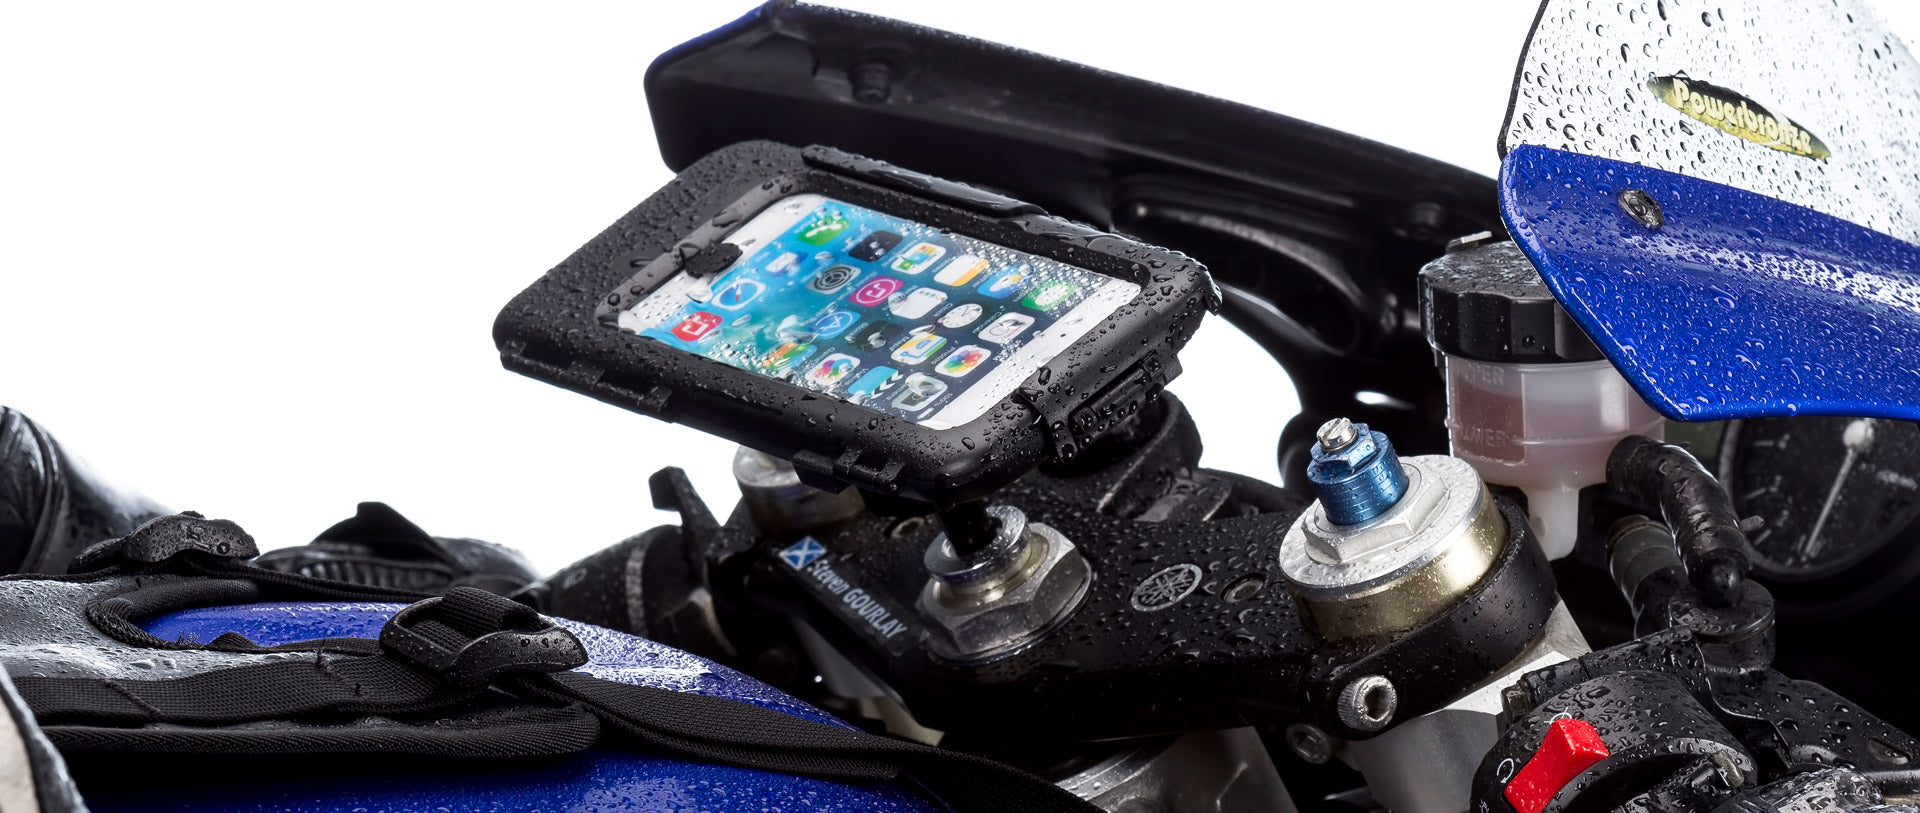 iPhone 6 motorcycle case